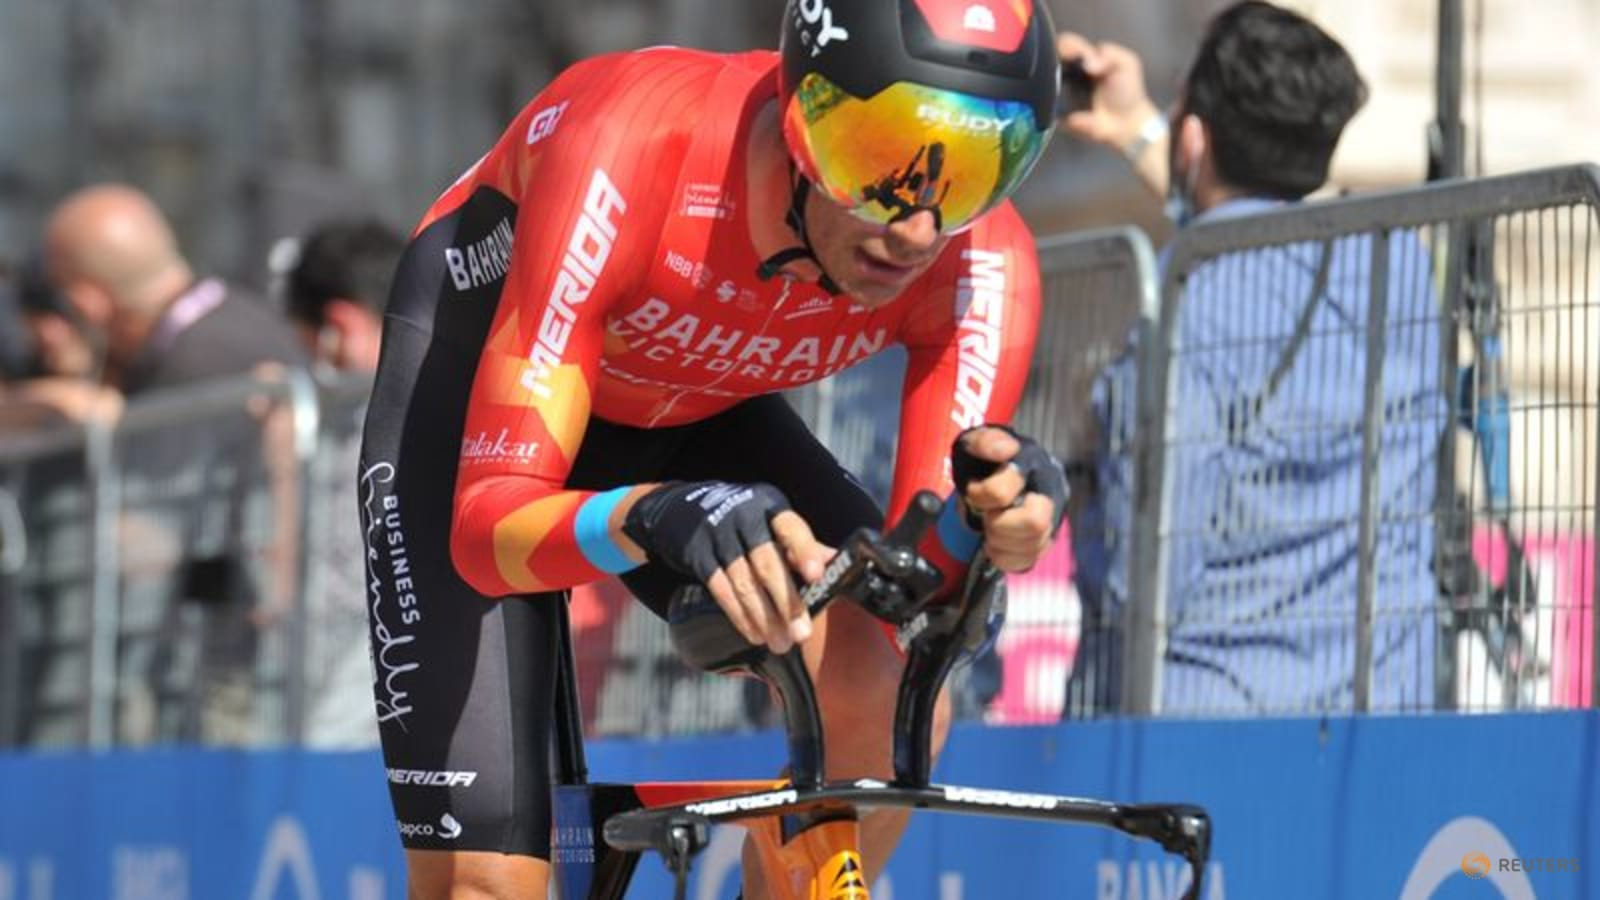 Caruso solos to Vuelta stage win in mountains, Roglic increases lead thumbnail